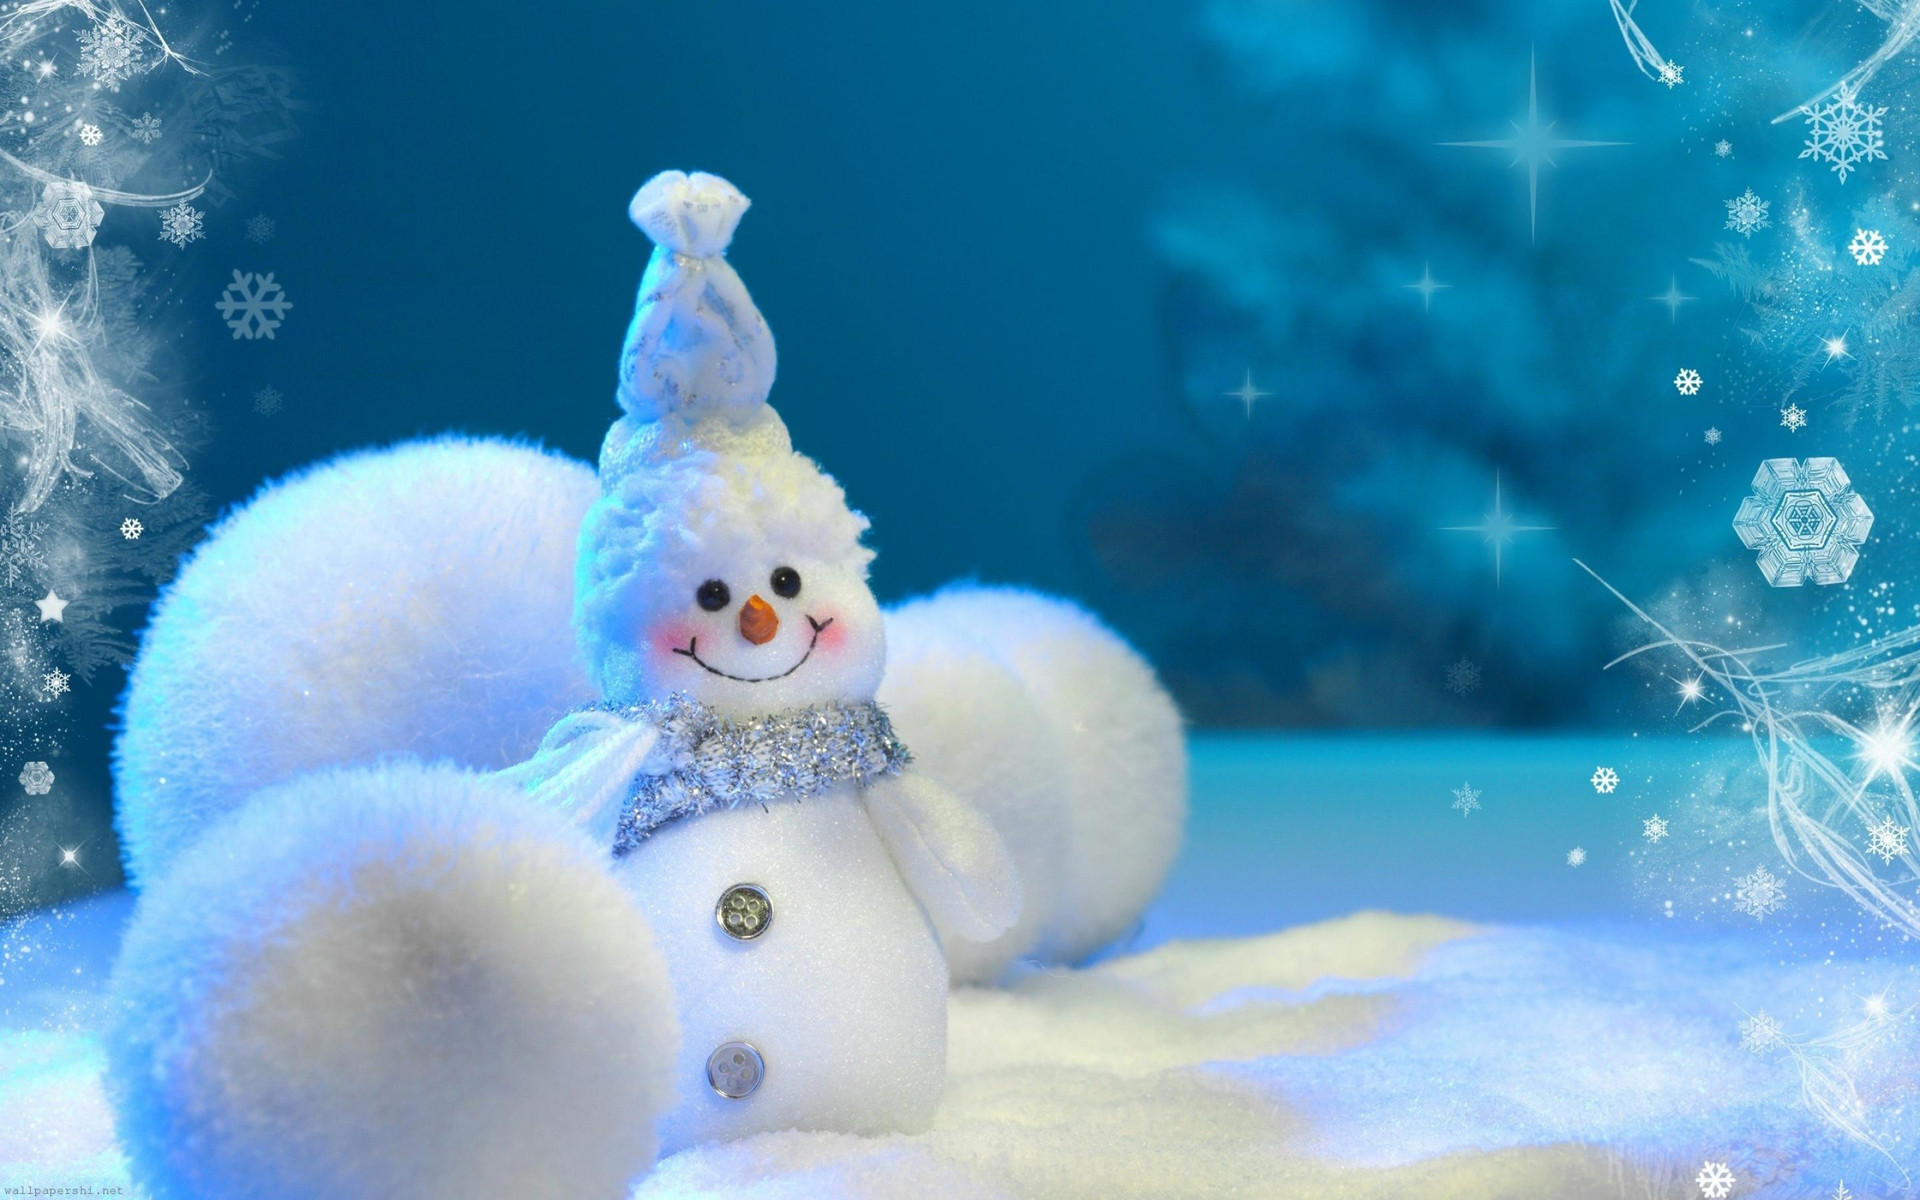 Animated Christmas Wallpaper Backgrounds 55 Images